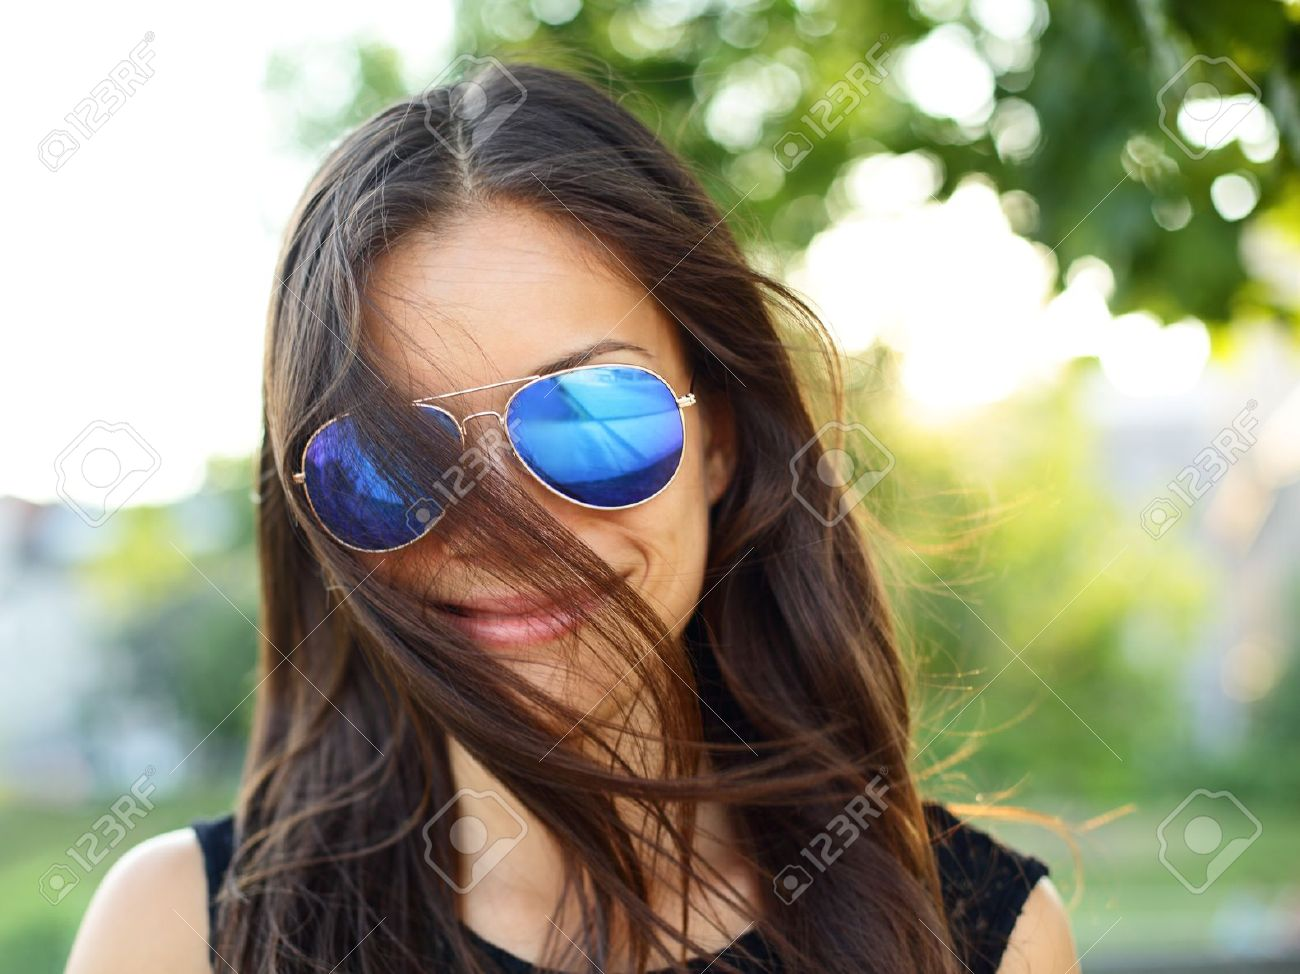 Sunglasses woman funky portrait outdoor with hair flying. Young girl wearing colored sunglasses outside looking at camera smiling happy, Young cool modern multiracial female model girl in her 20s, Stock Photo - 21232784